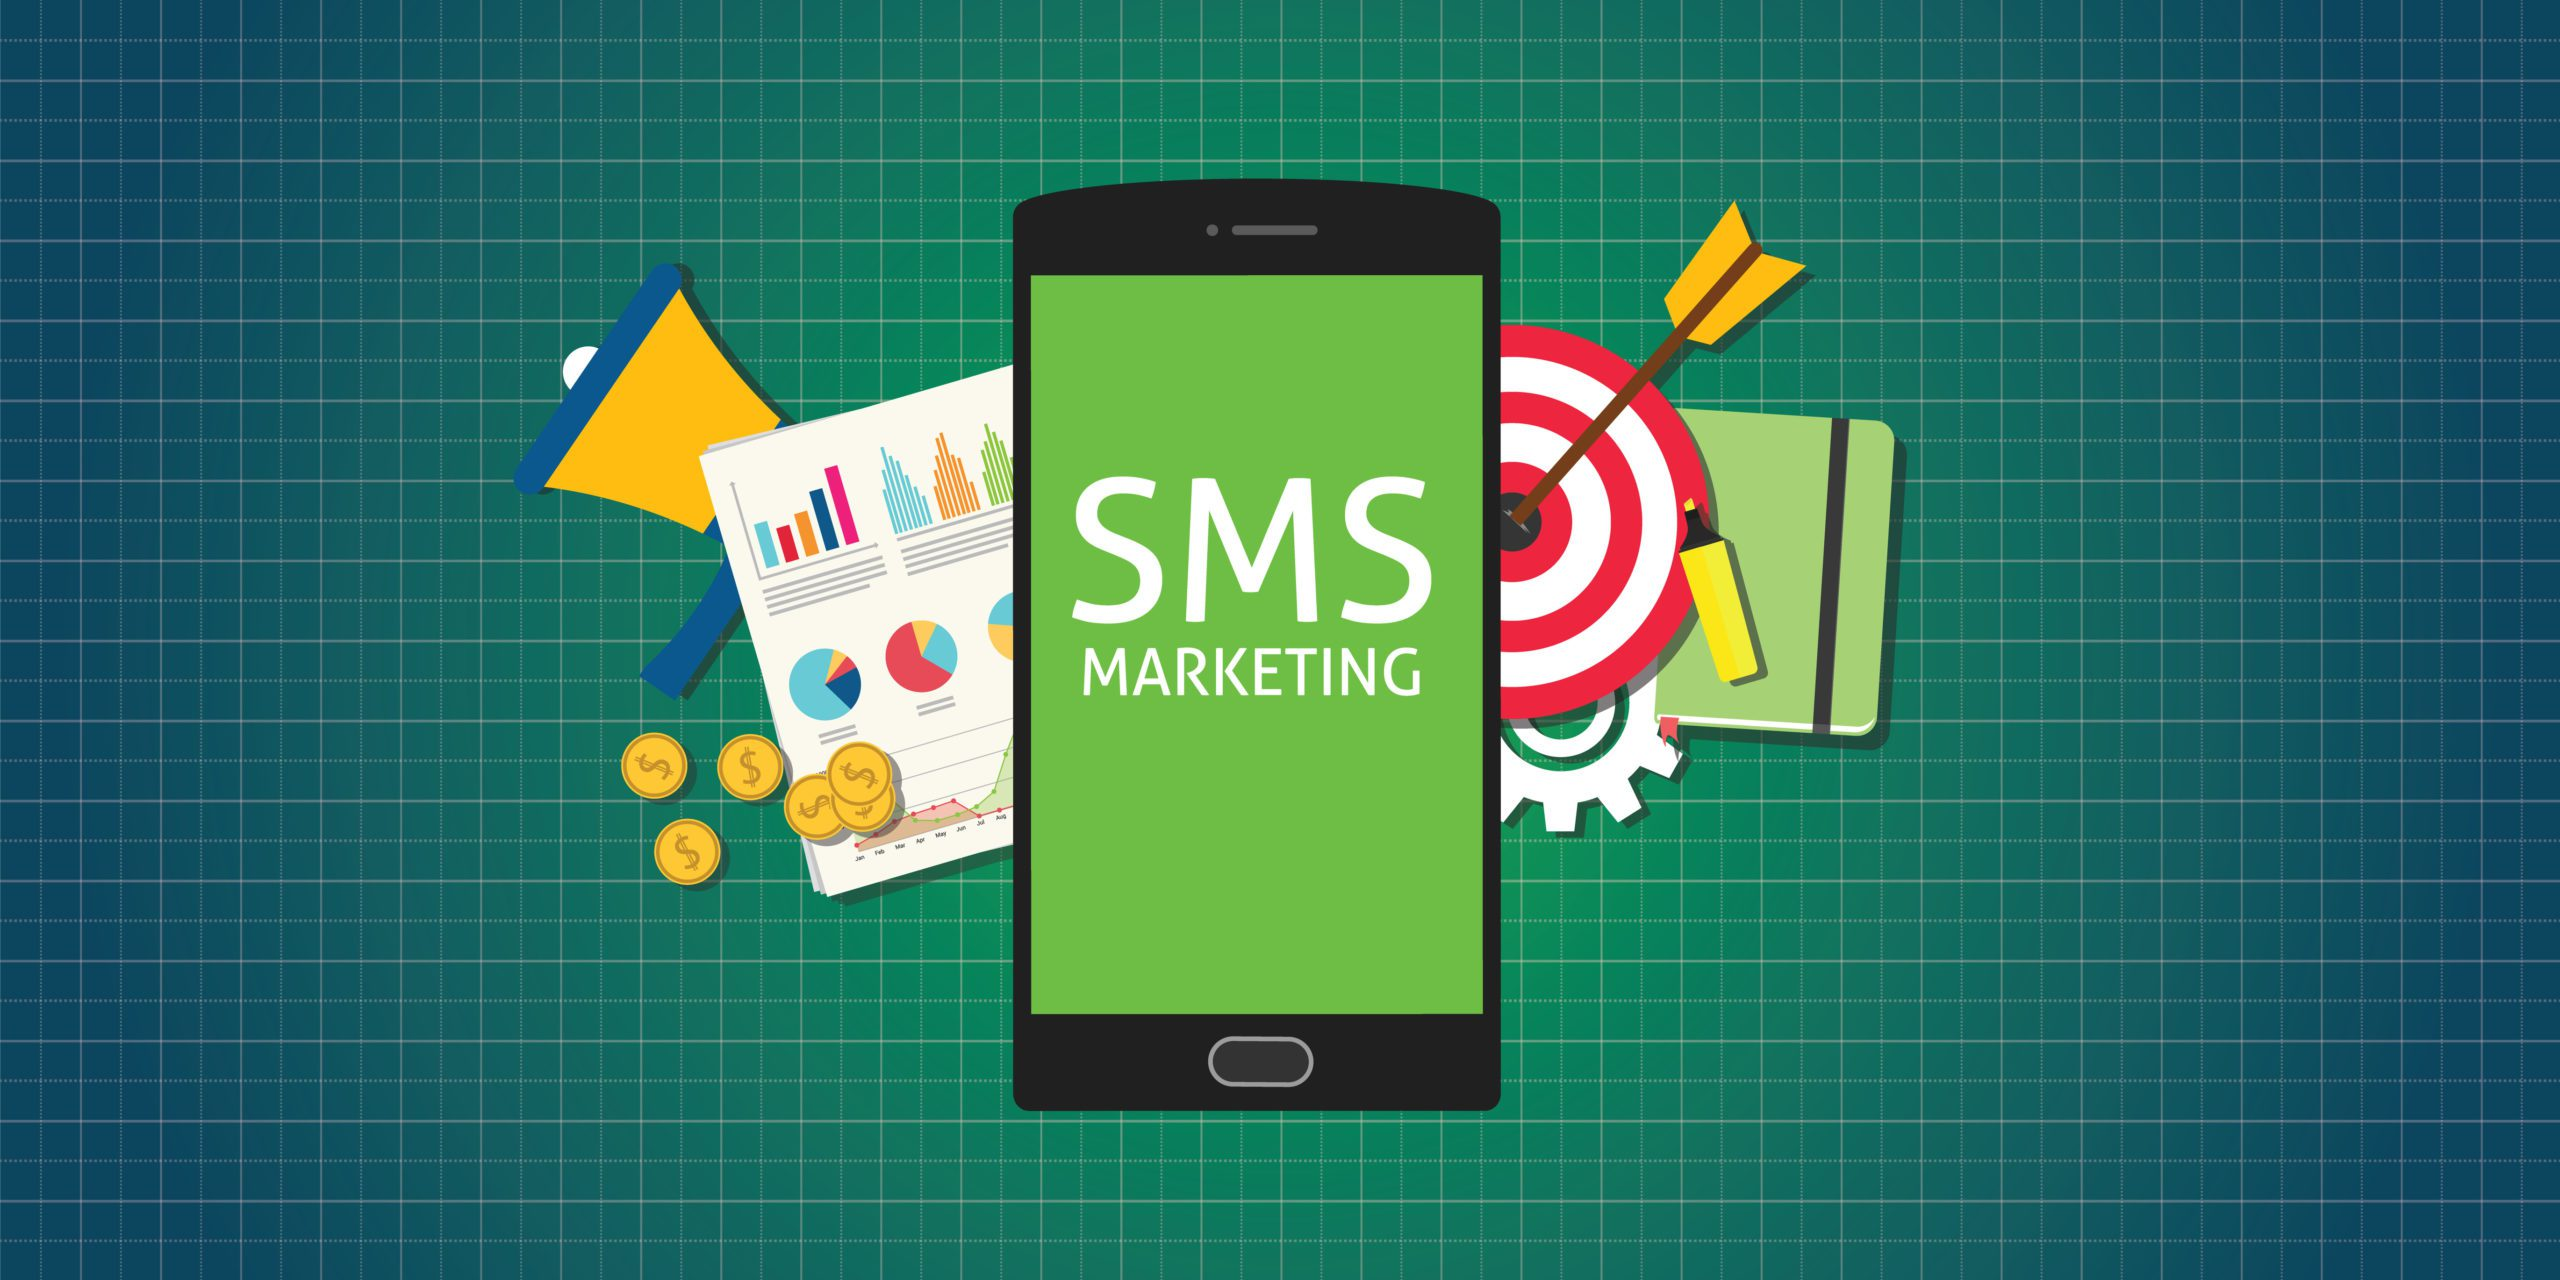 5 SMS Marketing Practices To Widen Your Customer Reach